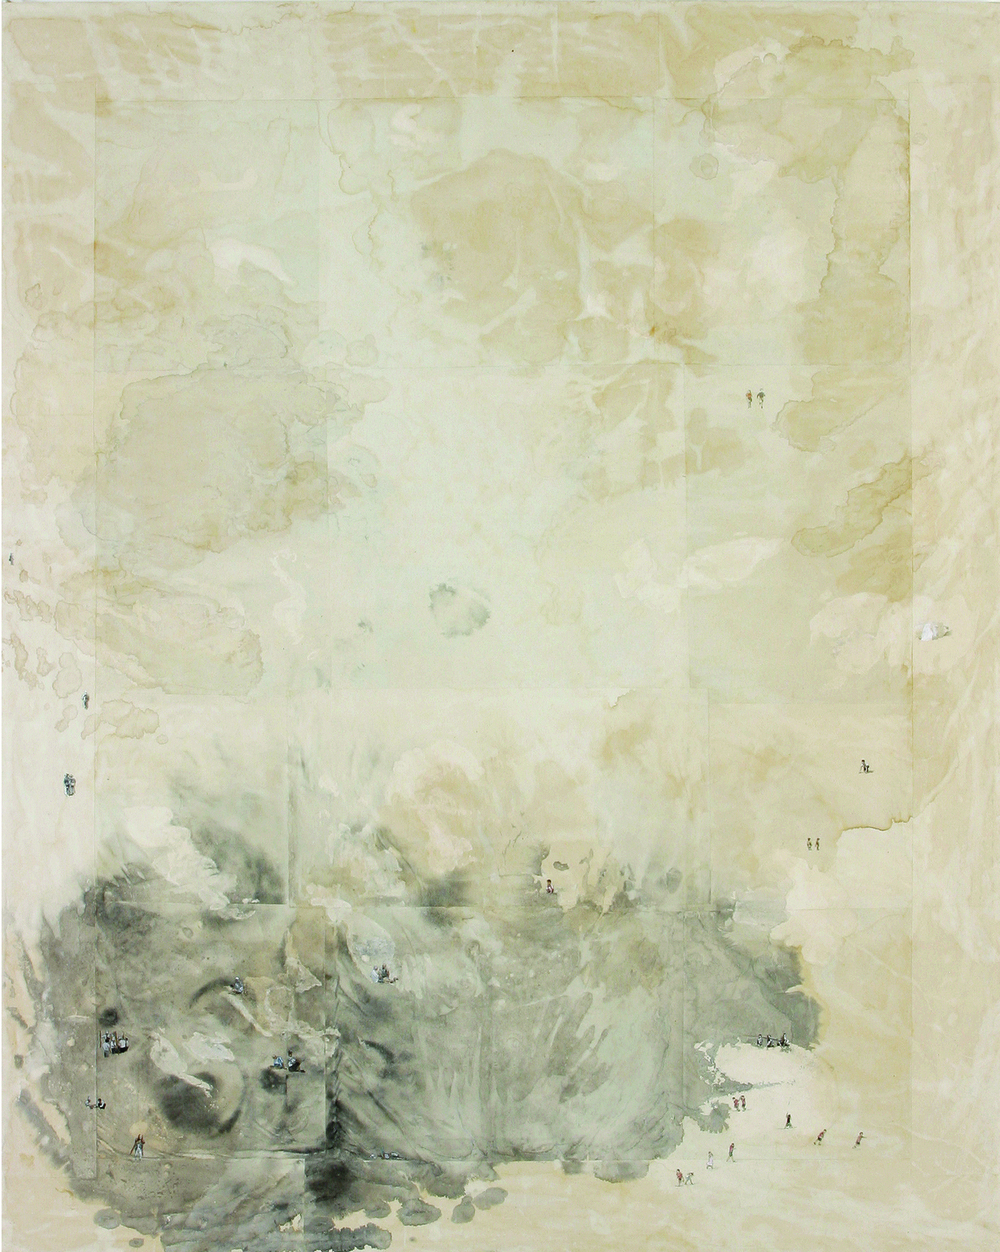 Memory Traces _The Natural Mind (心前)   162x130cm  mixed media  2006